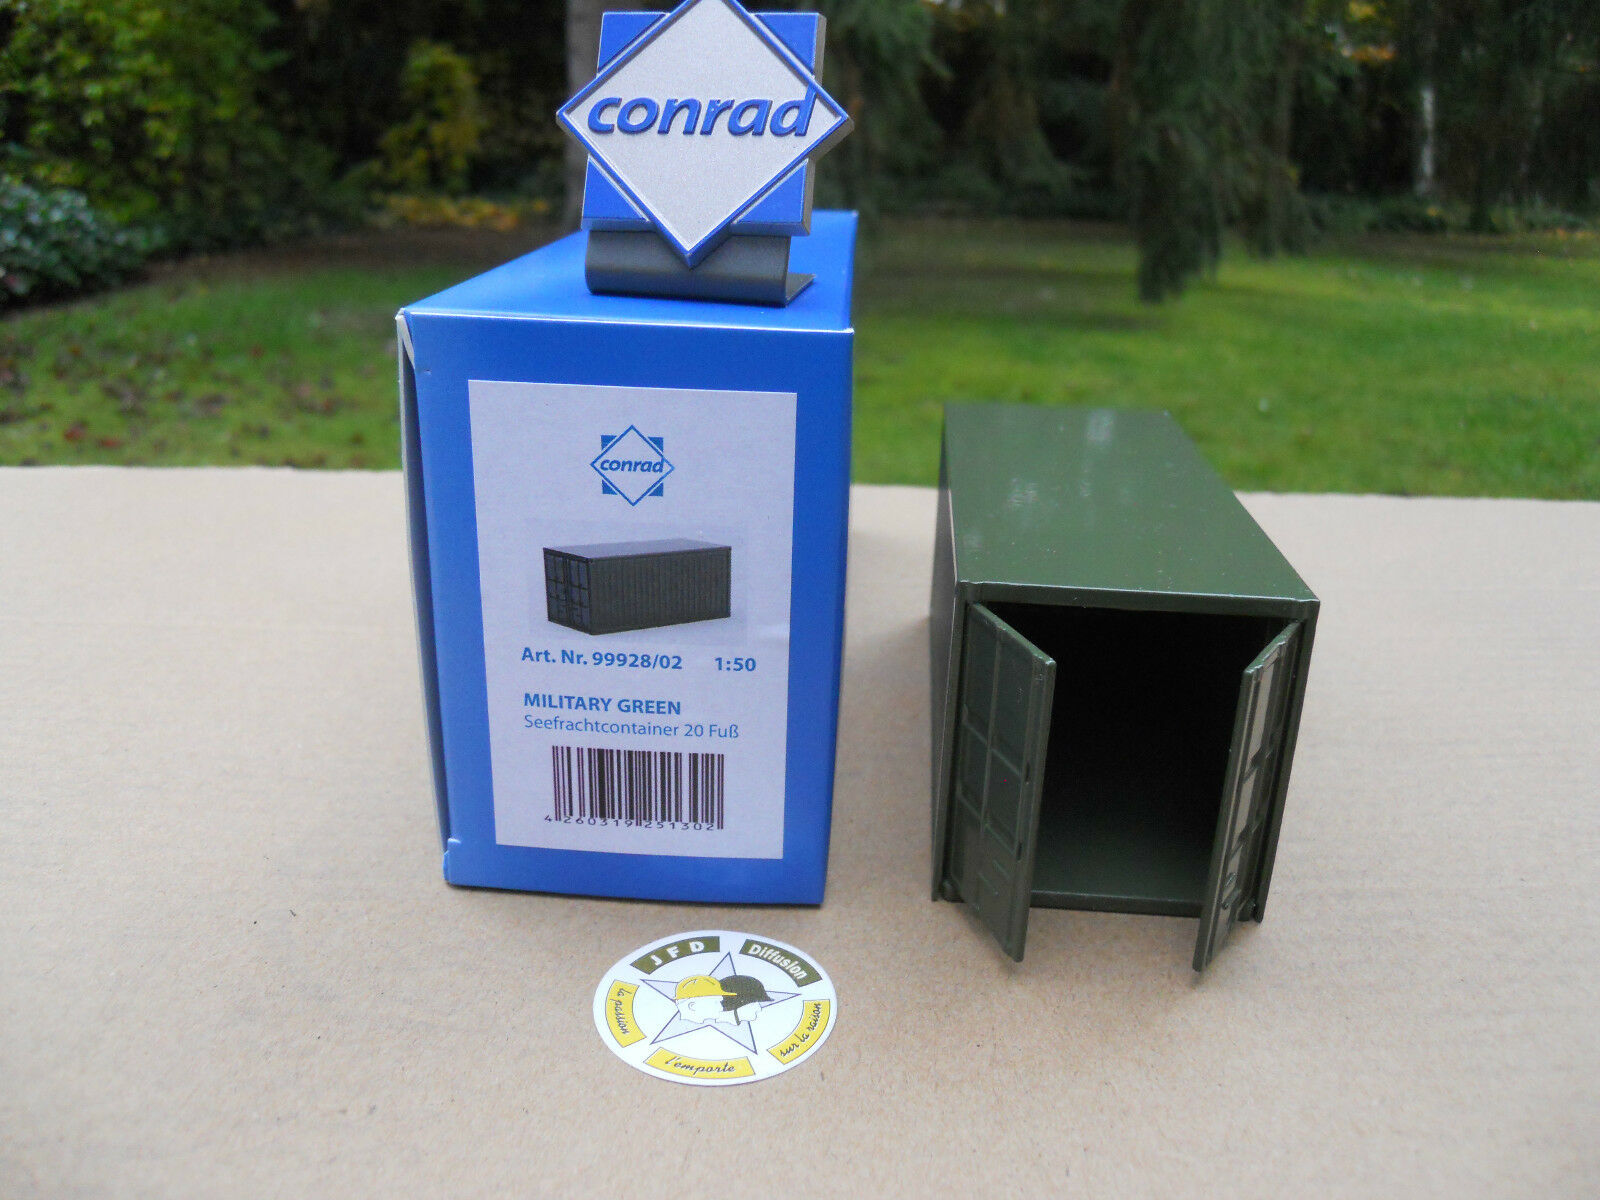 VEHICLE MILITARY CONRAD (4) CONTAINERS 20 FEET FEET FEET DOORS OPENING OLIVE DRAB bb563b